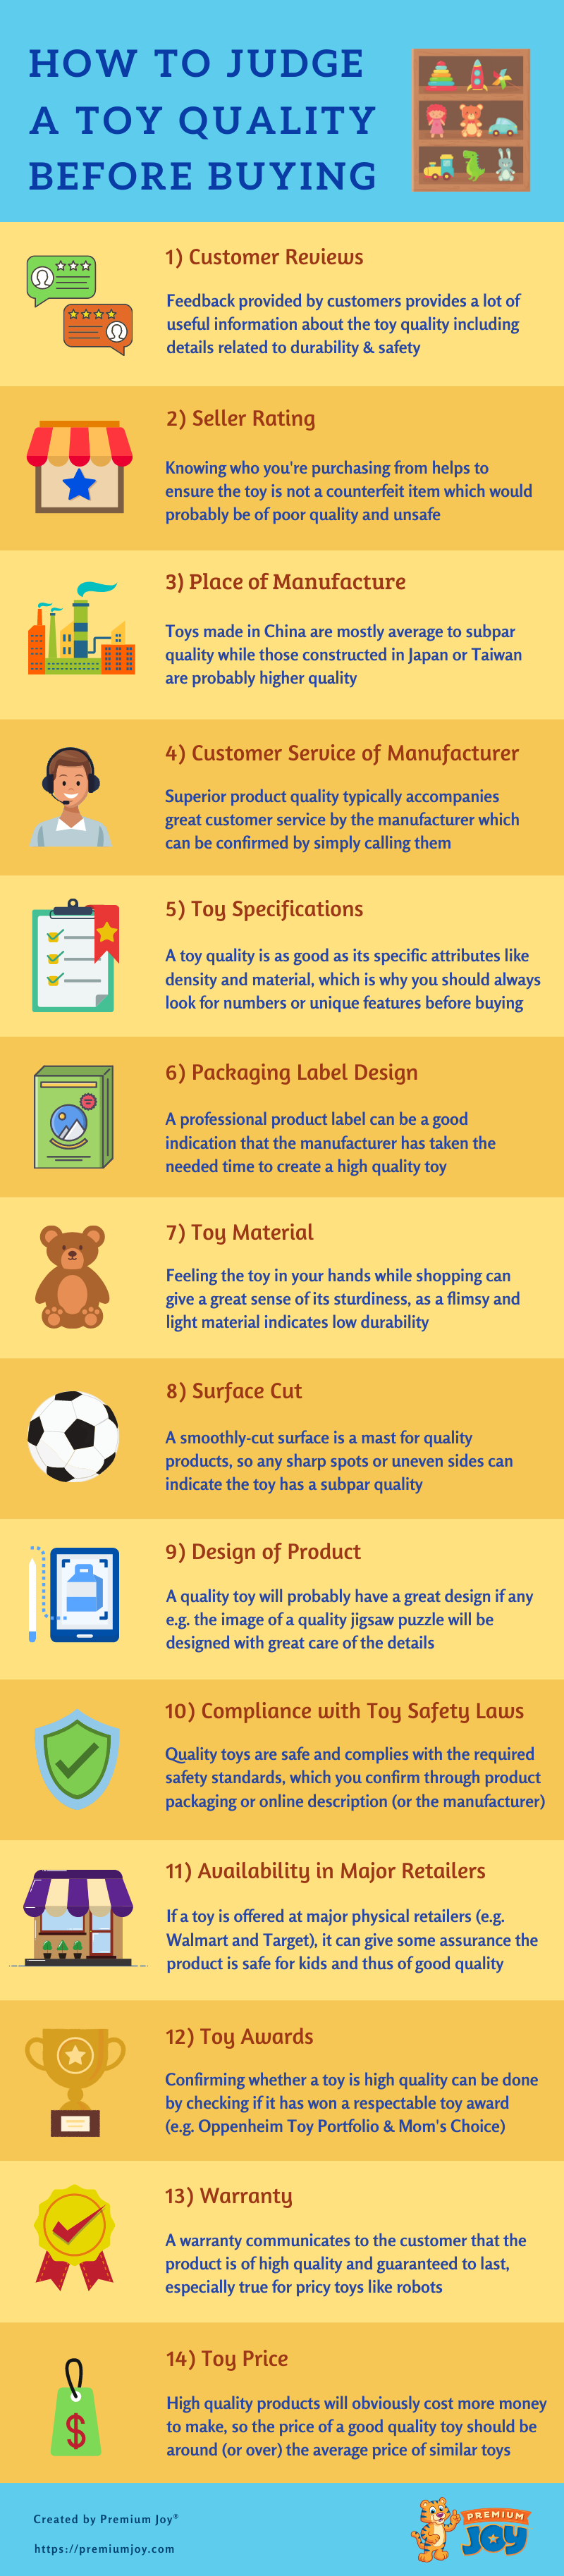 how to judge toy quality - infographic